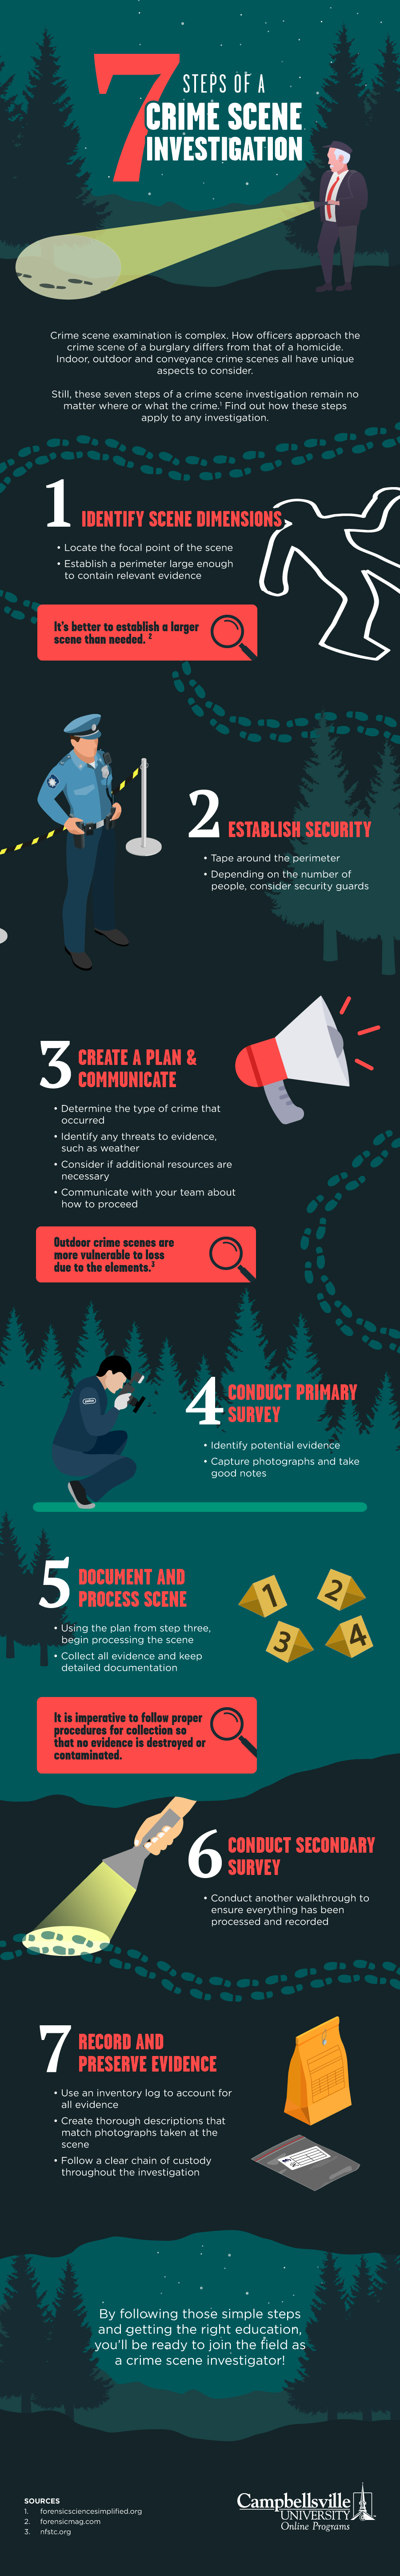 Illustrated infographic with an outdoor, wooded, night time theme which shows investigators working through the 7 steps of a crime scene investigation.